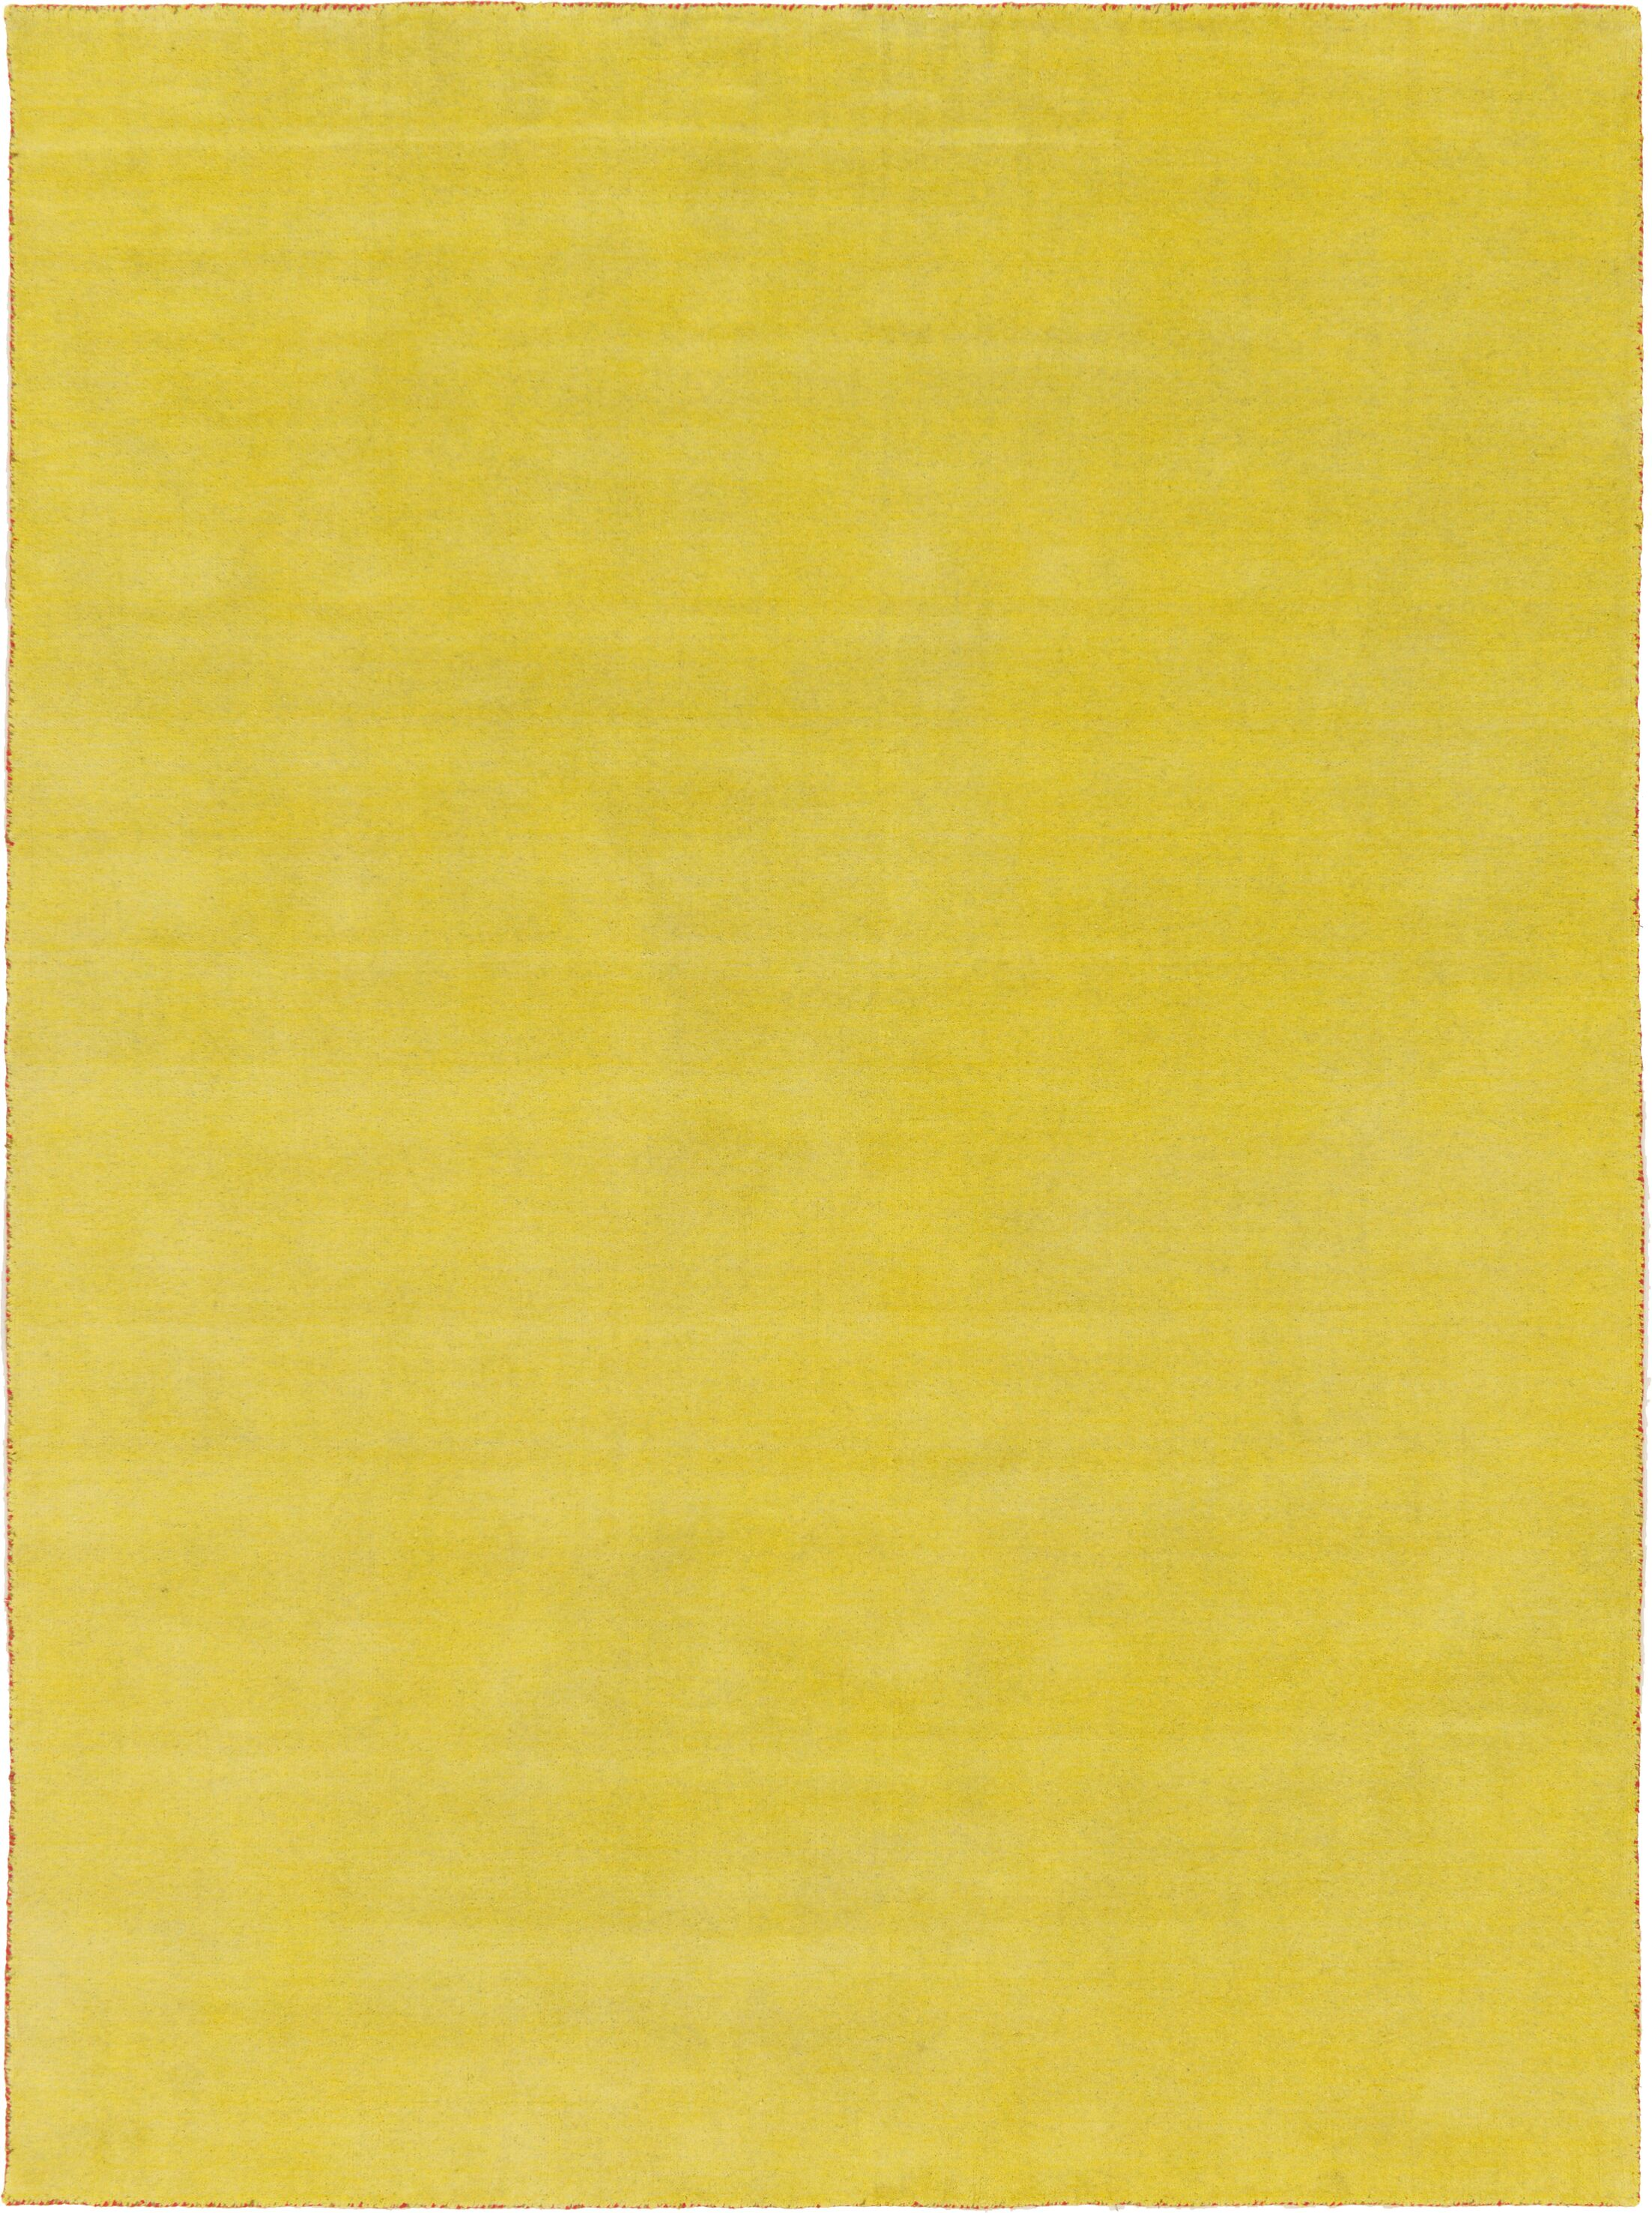 Taul Hand-Knotted Wool Yellow Area Rug Rug Size: 8' 2 x 11' 6